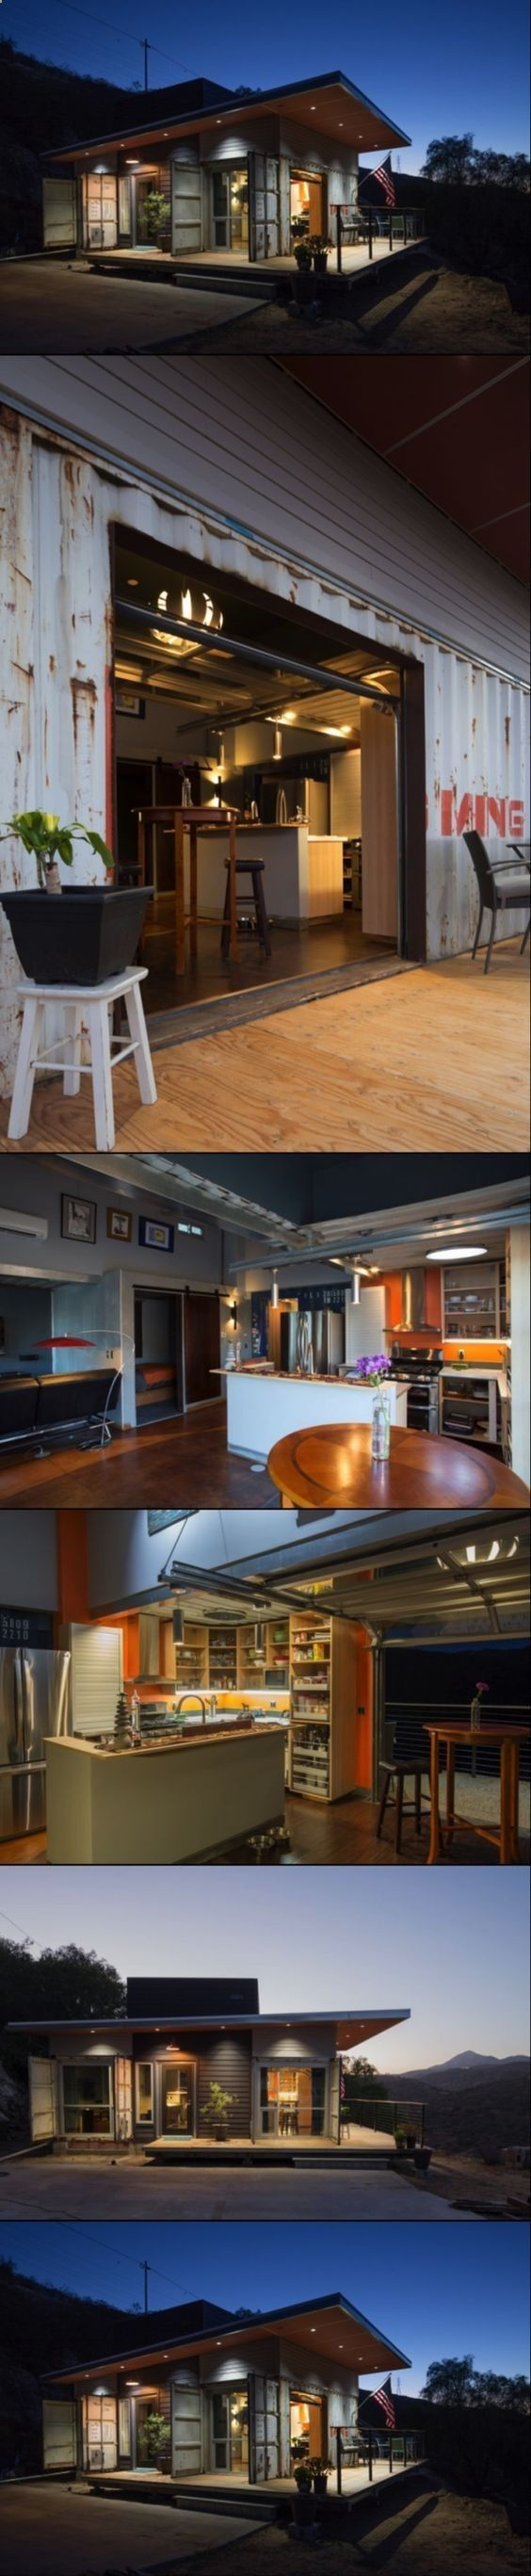 Container house rustic shipping container homes built in a budget